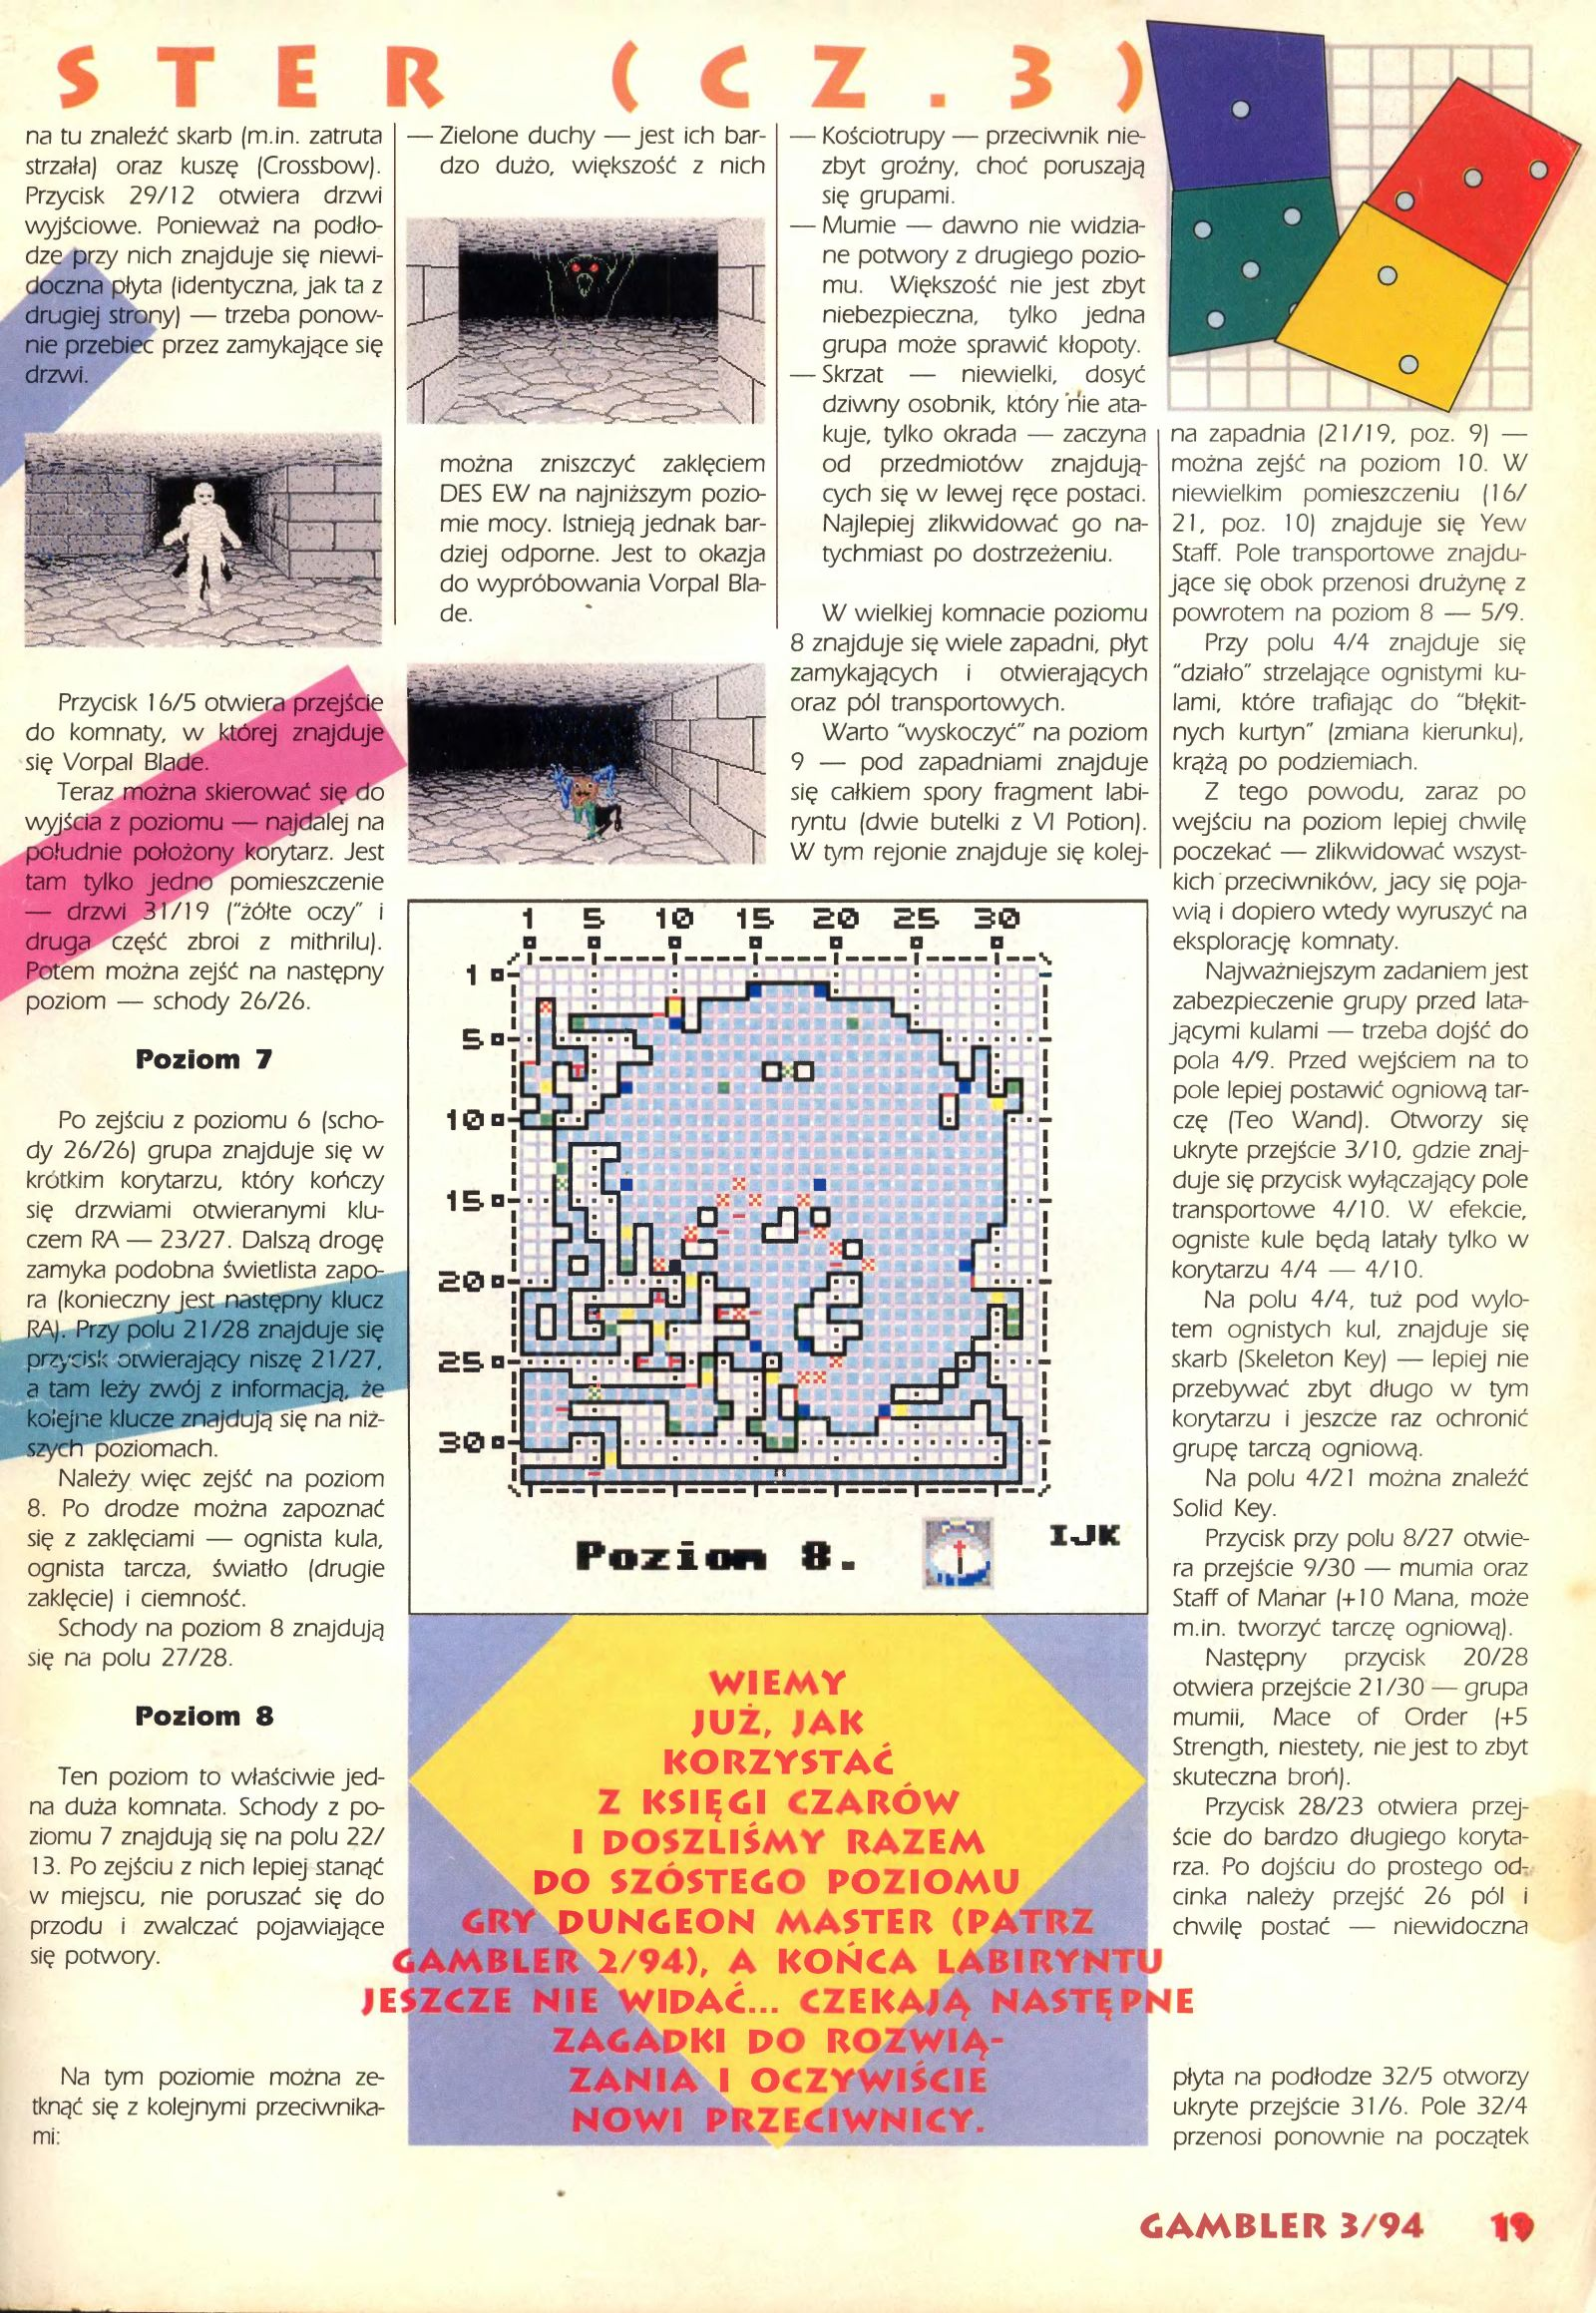 Dungeon Master Guide published in Polish magazine 'Gambler', March 1994, Page 19